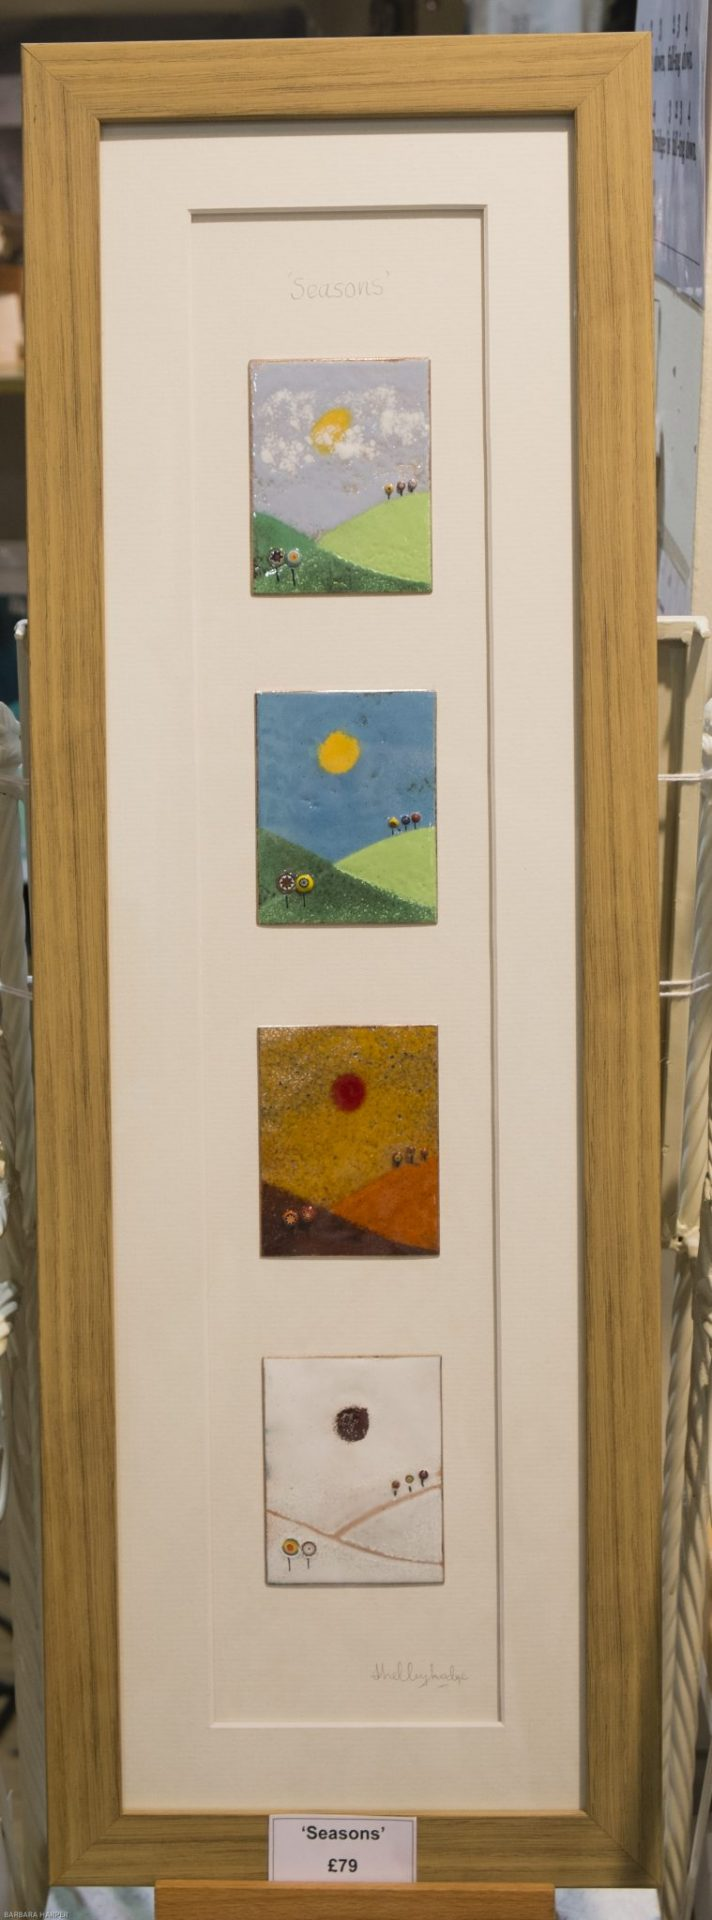 contemporary enamelled items including, jewellery, wall art & homewares from Fabrication Crafts independent shopping in Leeds